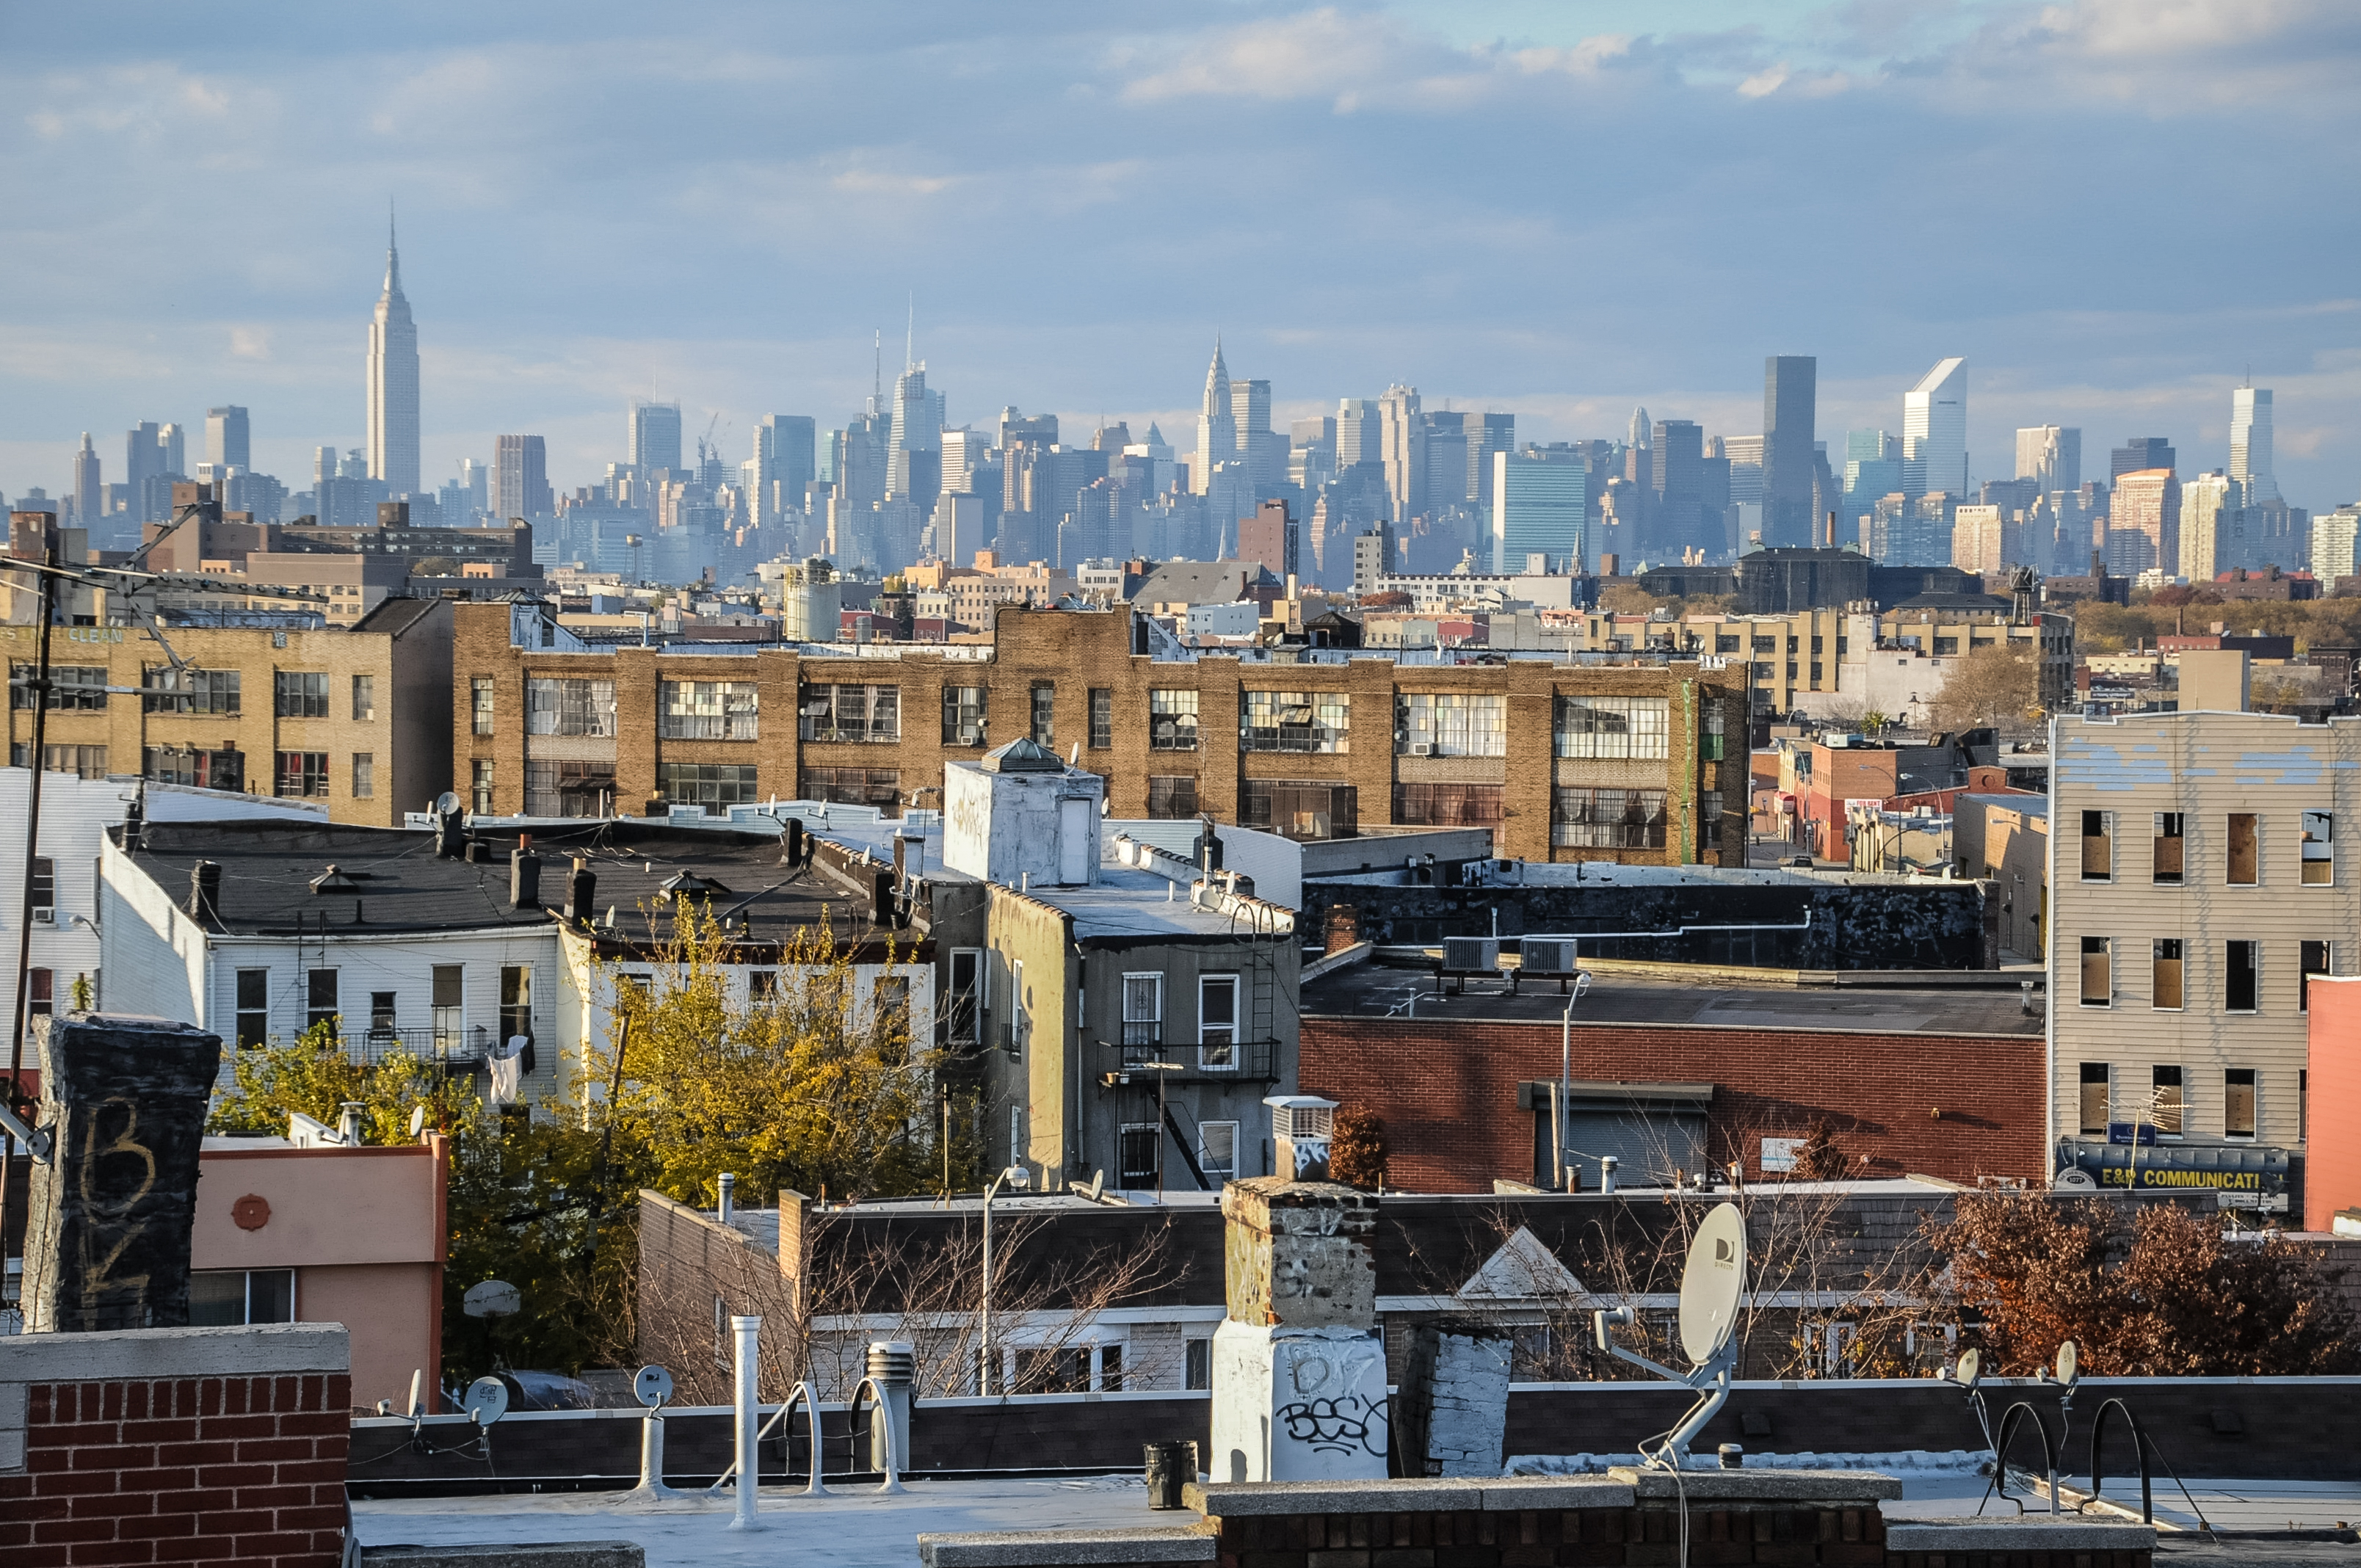 Vision to rezone Bushwick unveiled by city